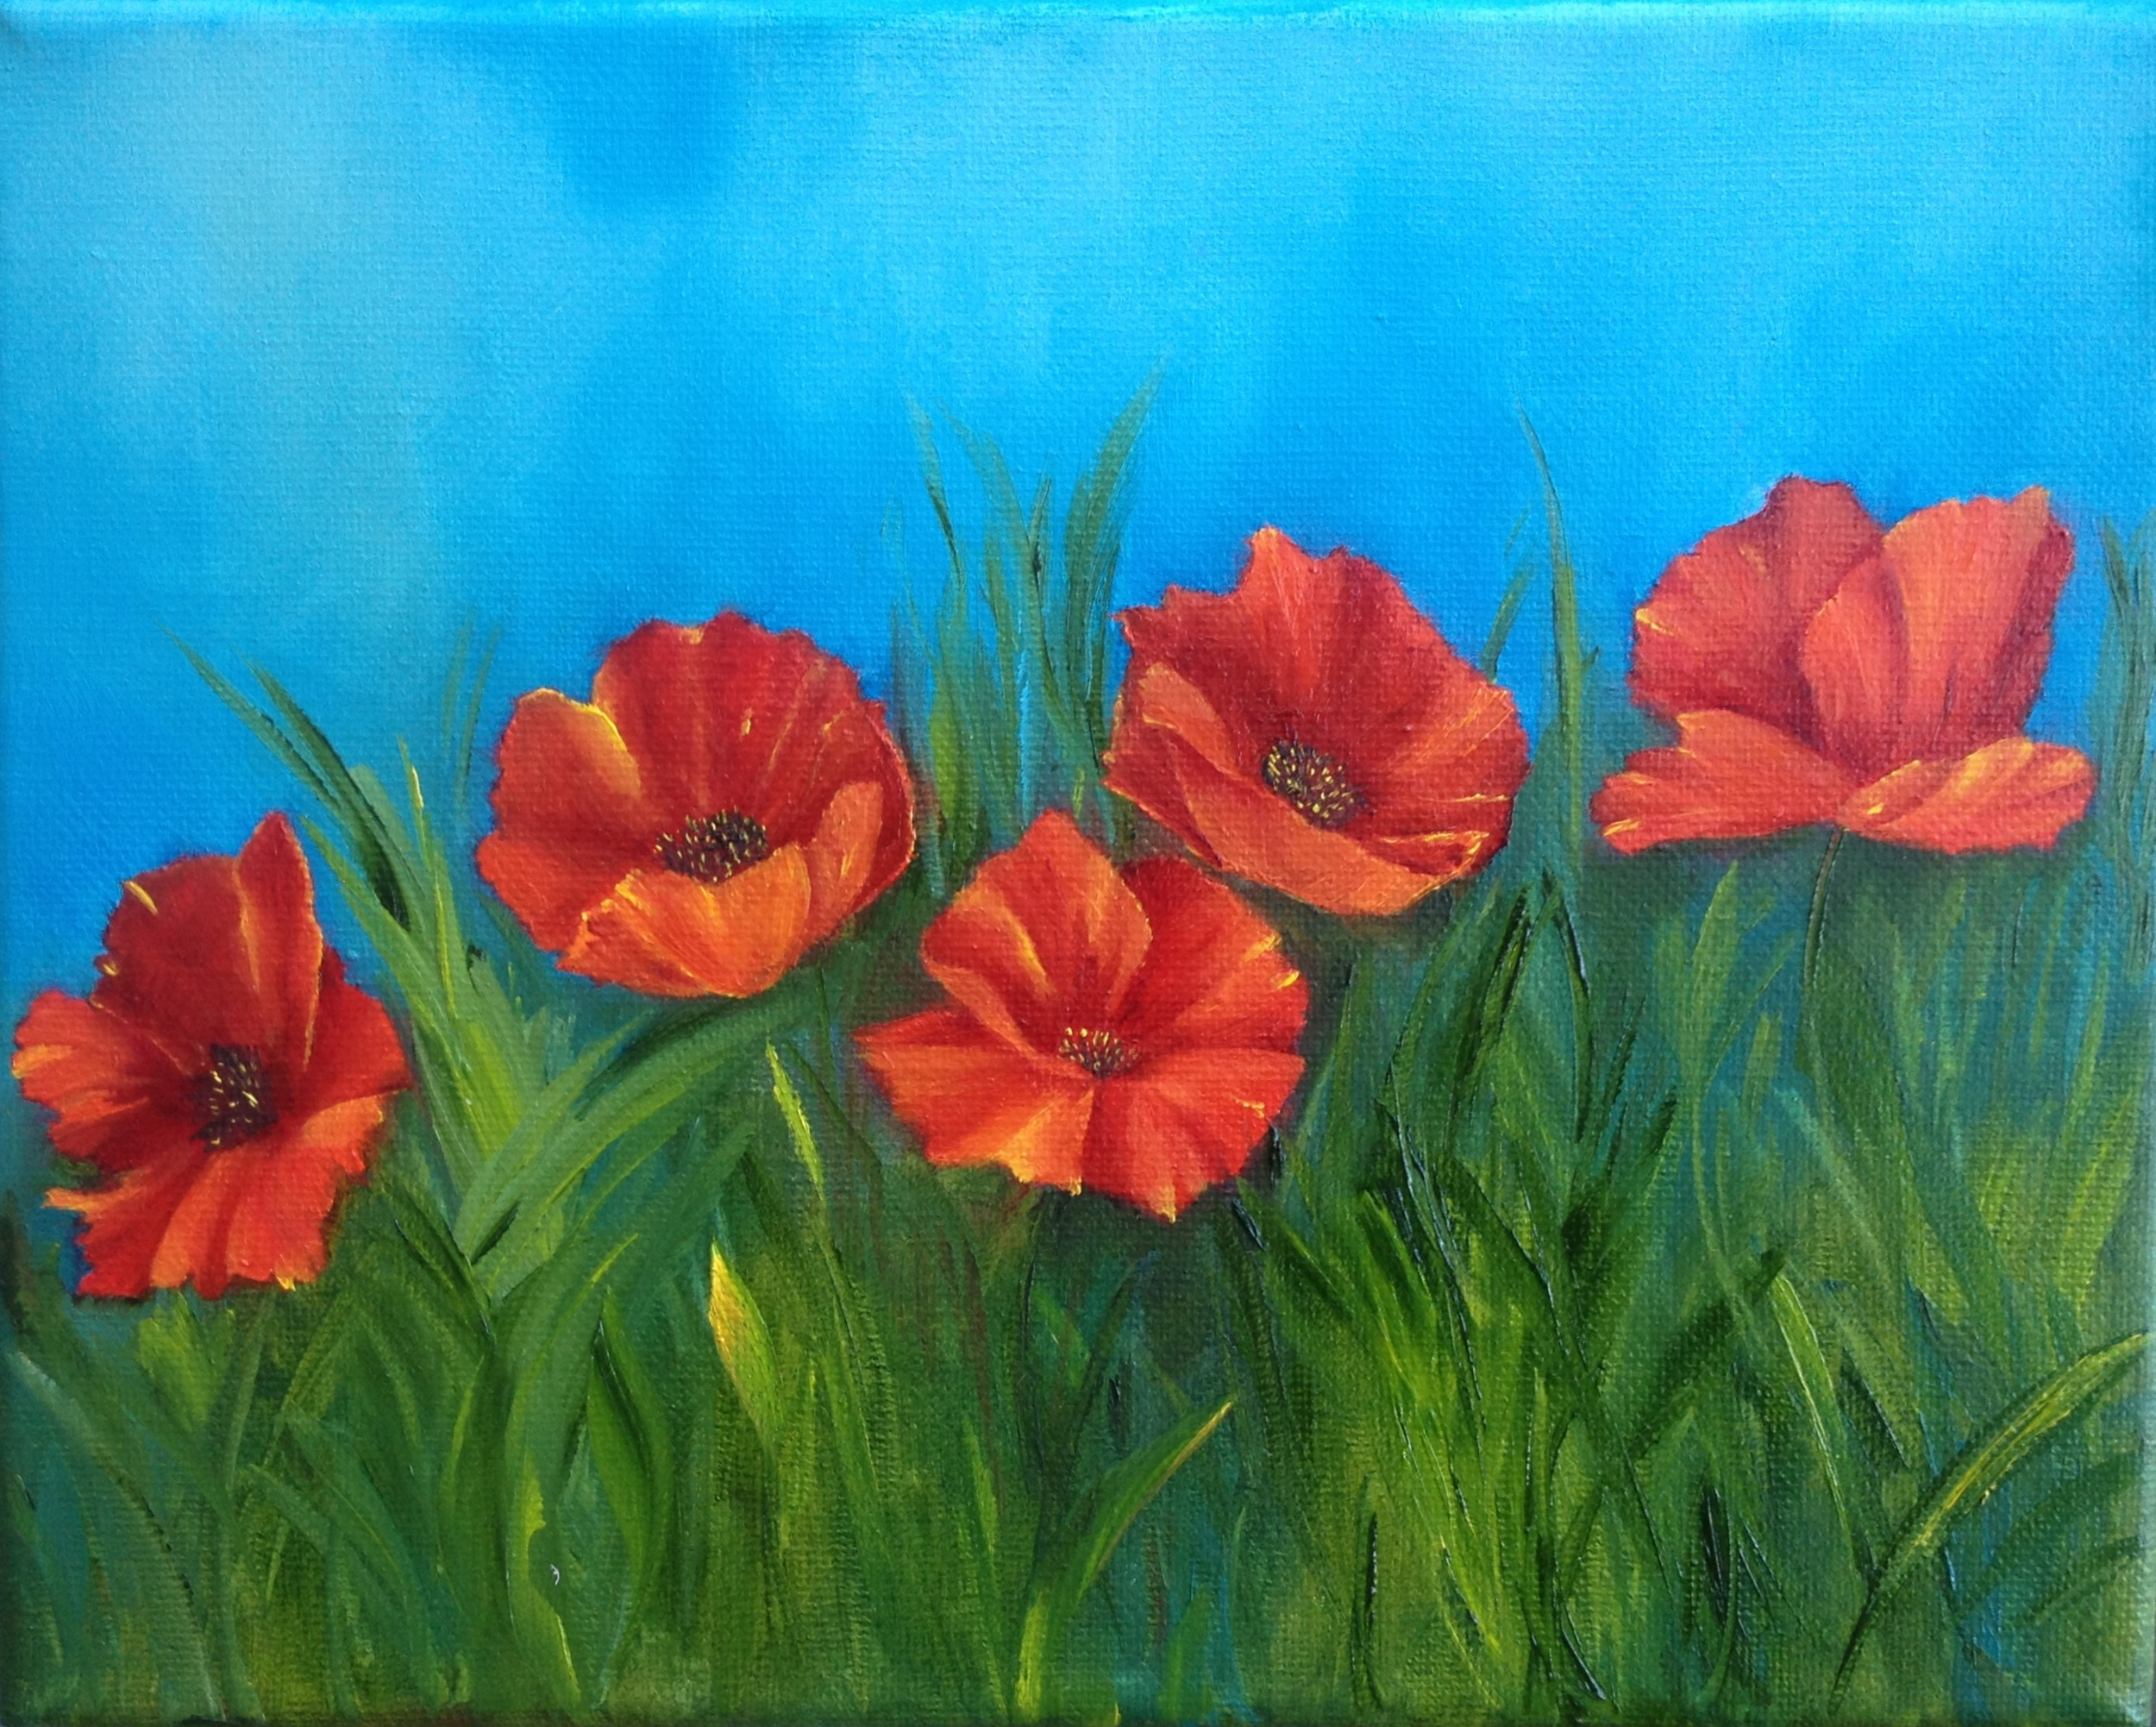 Crimson Poppies Row by Row